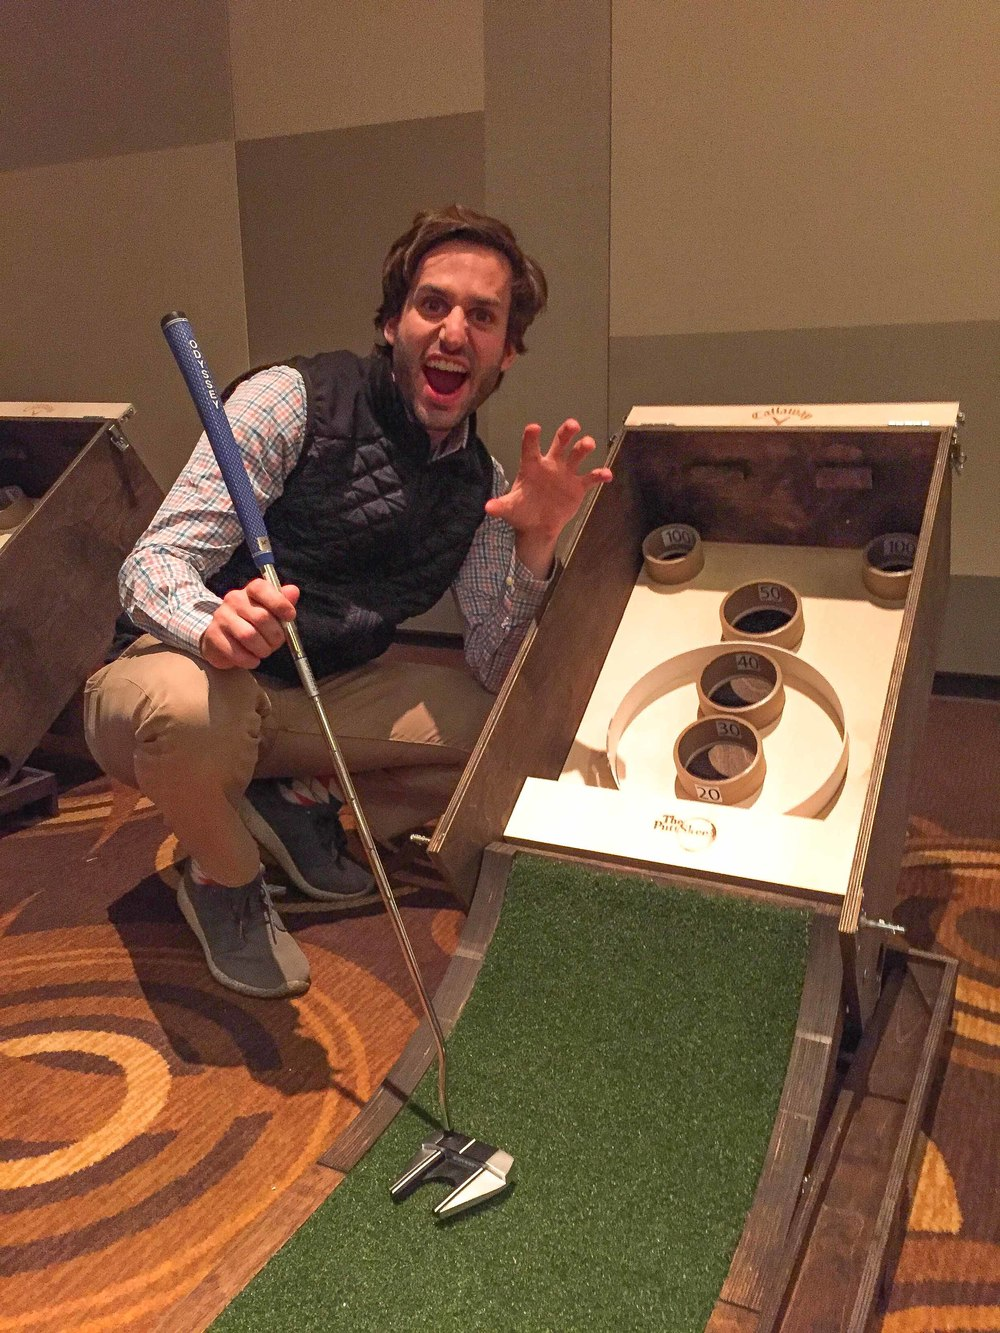 """I am pretty good at golf, I am really good at skee-ball, but I am absolutely awful at Puttskee"" - Four time National Skee-Ball Champion, one time TYPHI Champion, Joey The Cat."